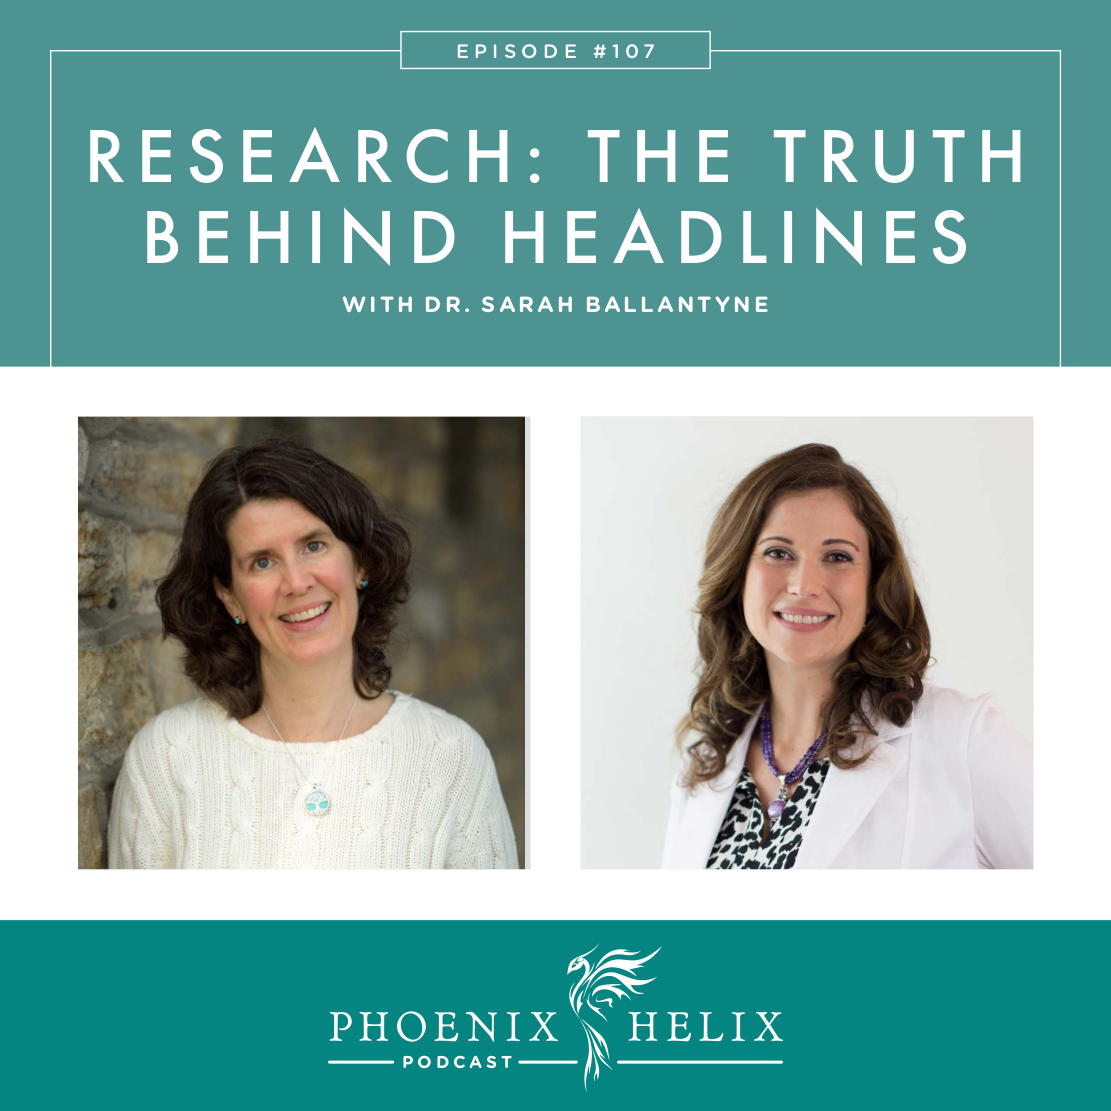 Research: The Truth Behind the Headlines with Dr. Sarah Ballantyne | Phoenix Helix Podcast